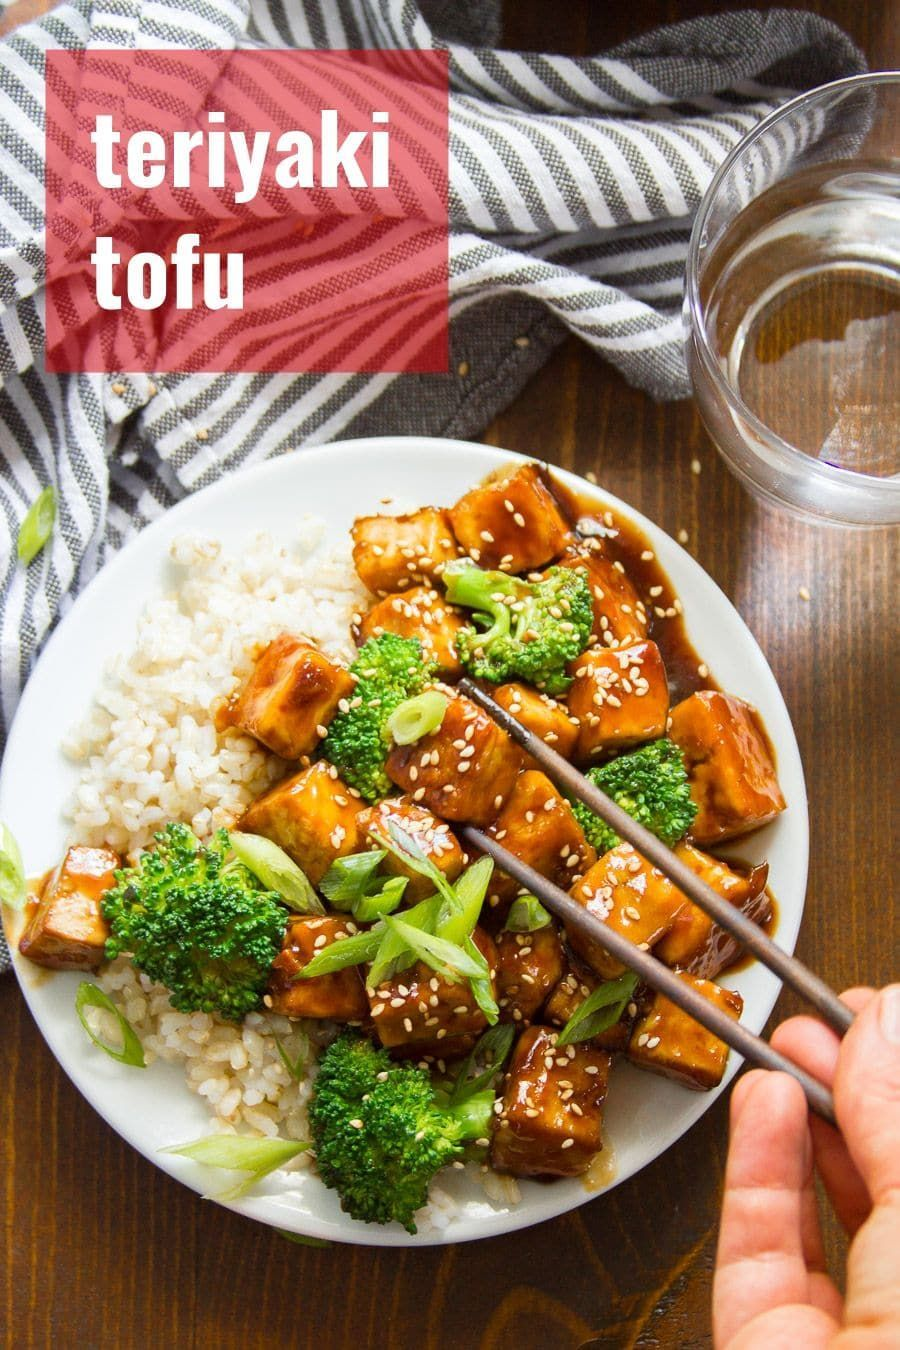 This crispy vegan teriyaki tofu is better than takeout and easy enough for a weeknight dinner! Crispy tofu nuggets are baked (not fried!) and smothered in sticky sweet and savory teriyaki sauce. Serve with rice and steamed veggies for a knock-your-socks-off vegetarian meal. crispy vegan teriyaki tofu is better than takeout and easy enough for a weeknight dinner! Crispy tofu nuggets are baked (not fried!) and smothered in sticky sweet and savory teriyaki sauce. Serve with rice and steamed veggies for a knock-your-socks-off vegetarian meal.